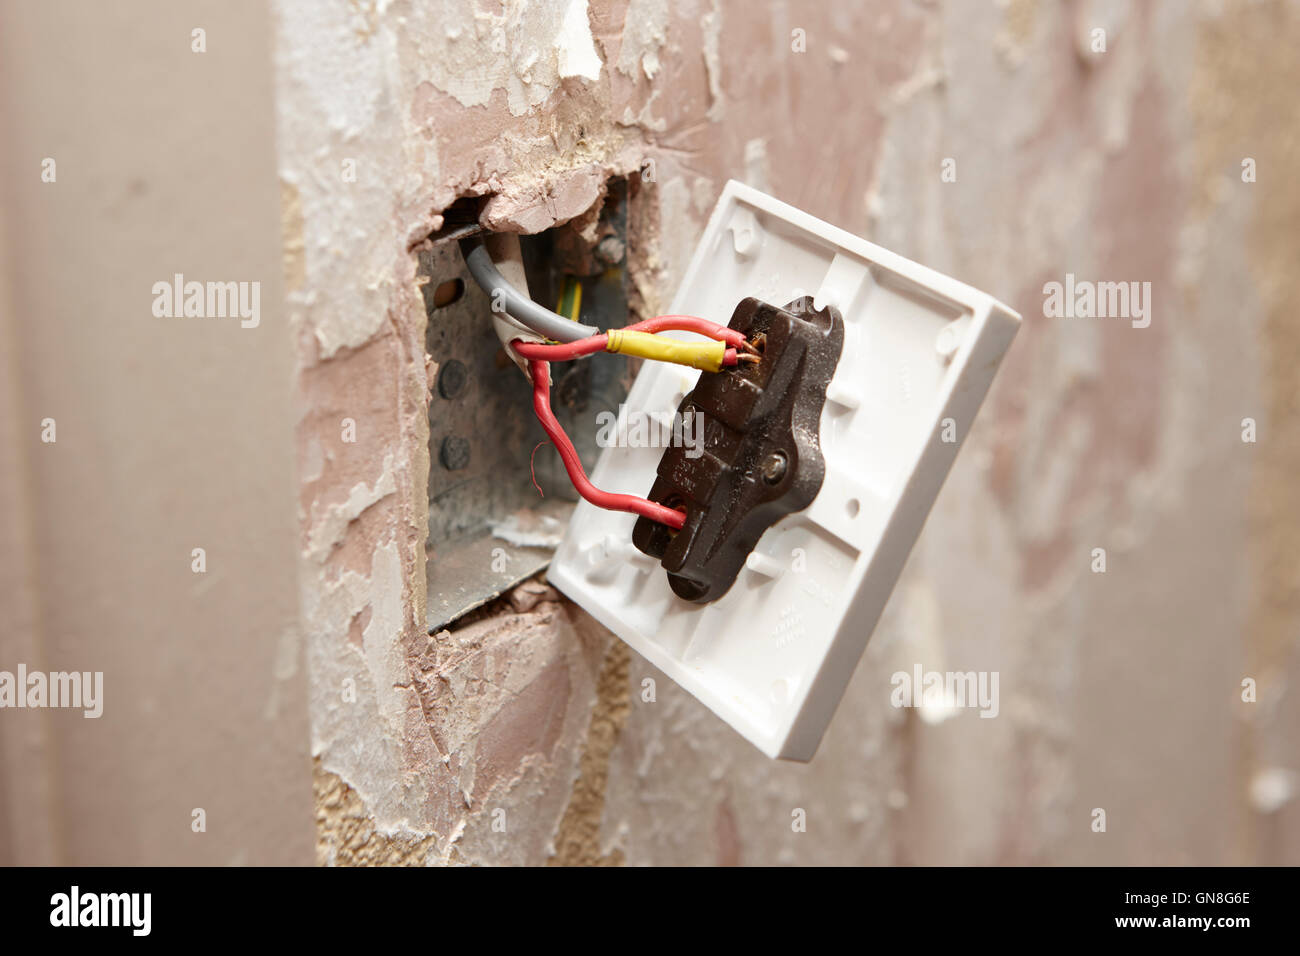 Fine Bare Wiring On Back Of Light Switch In House Being Redecorated In Wiring Digital Resources Remcakbiperorg